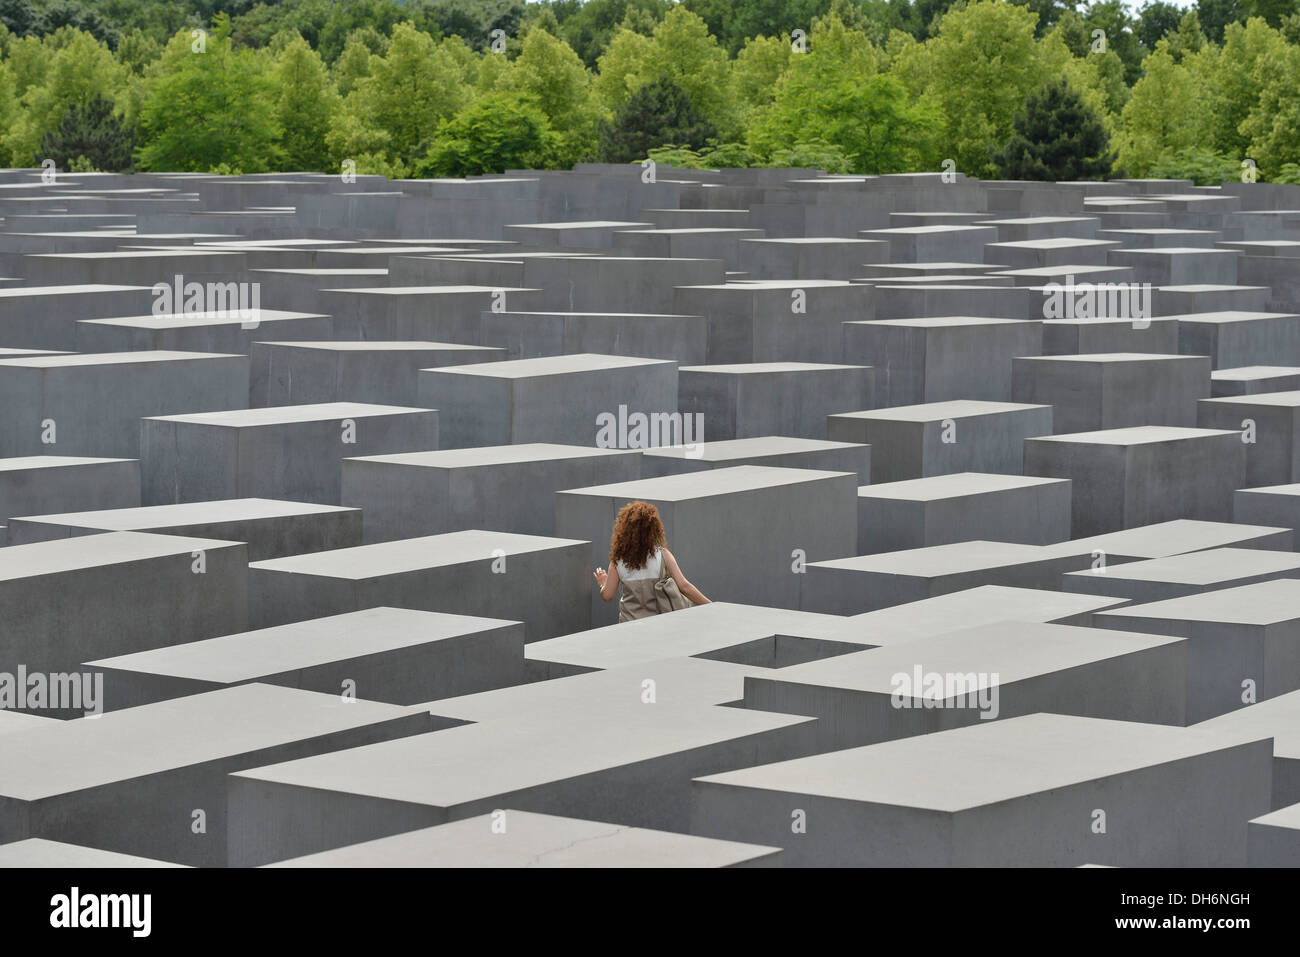 Berlin. Germany. Memorial to the Murdered Jews of Europe / Holocaust Memorial, a lone woman wanders amongst the stelae. - Stock Image